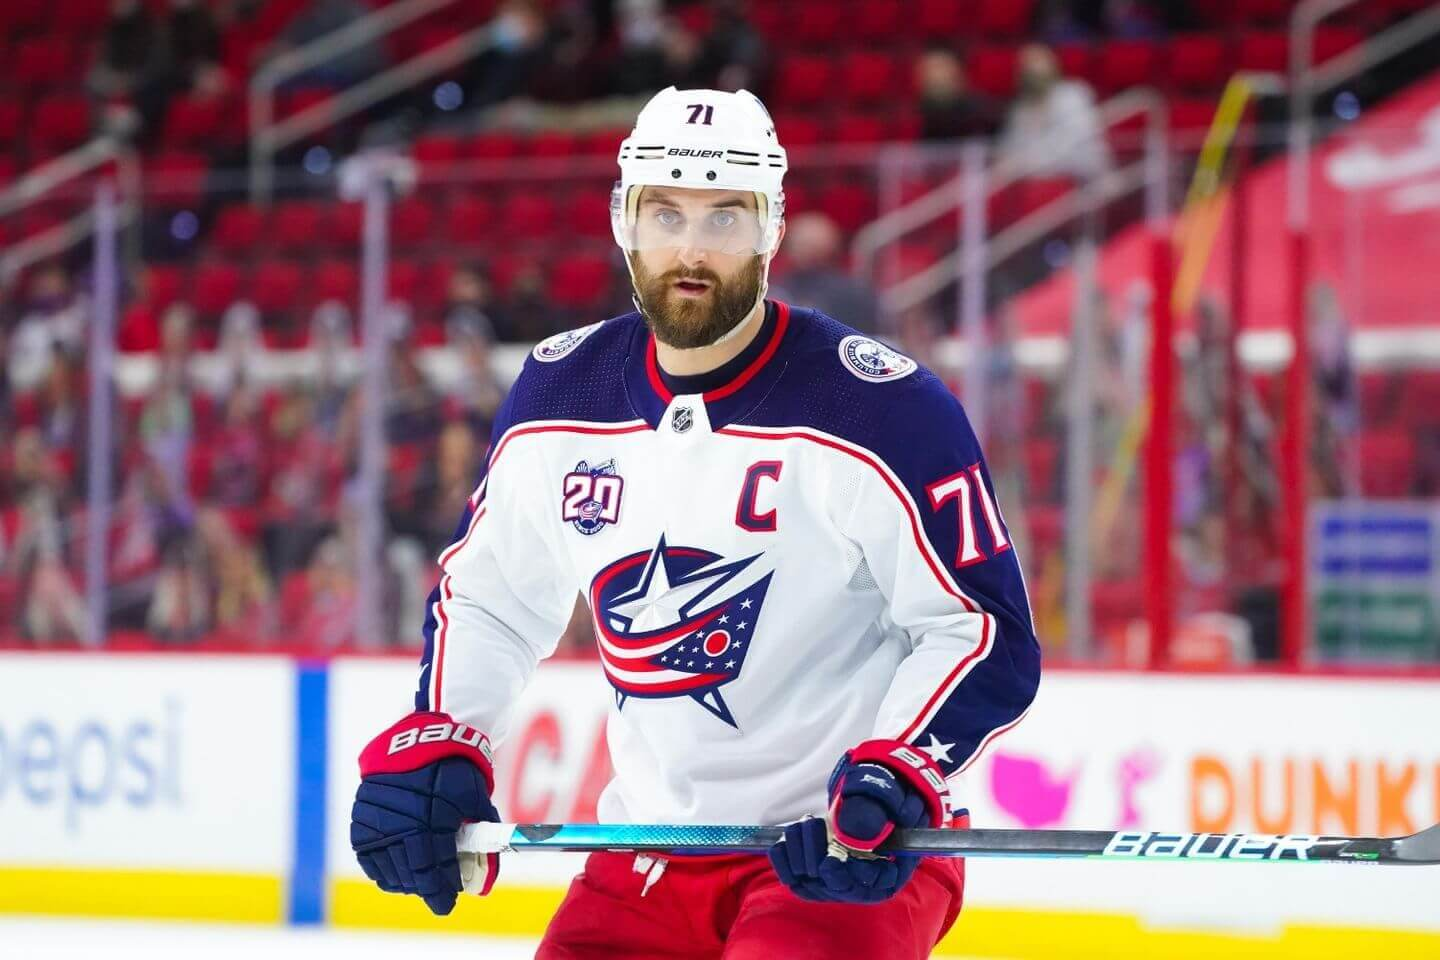 Nick Foligno: 'I could feel it in my gut'